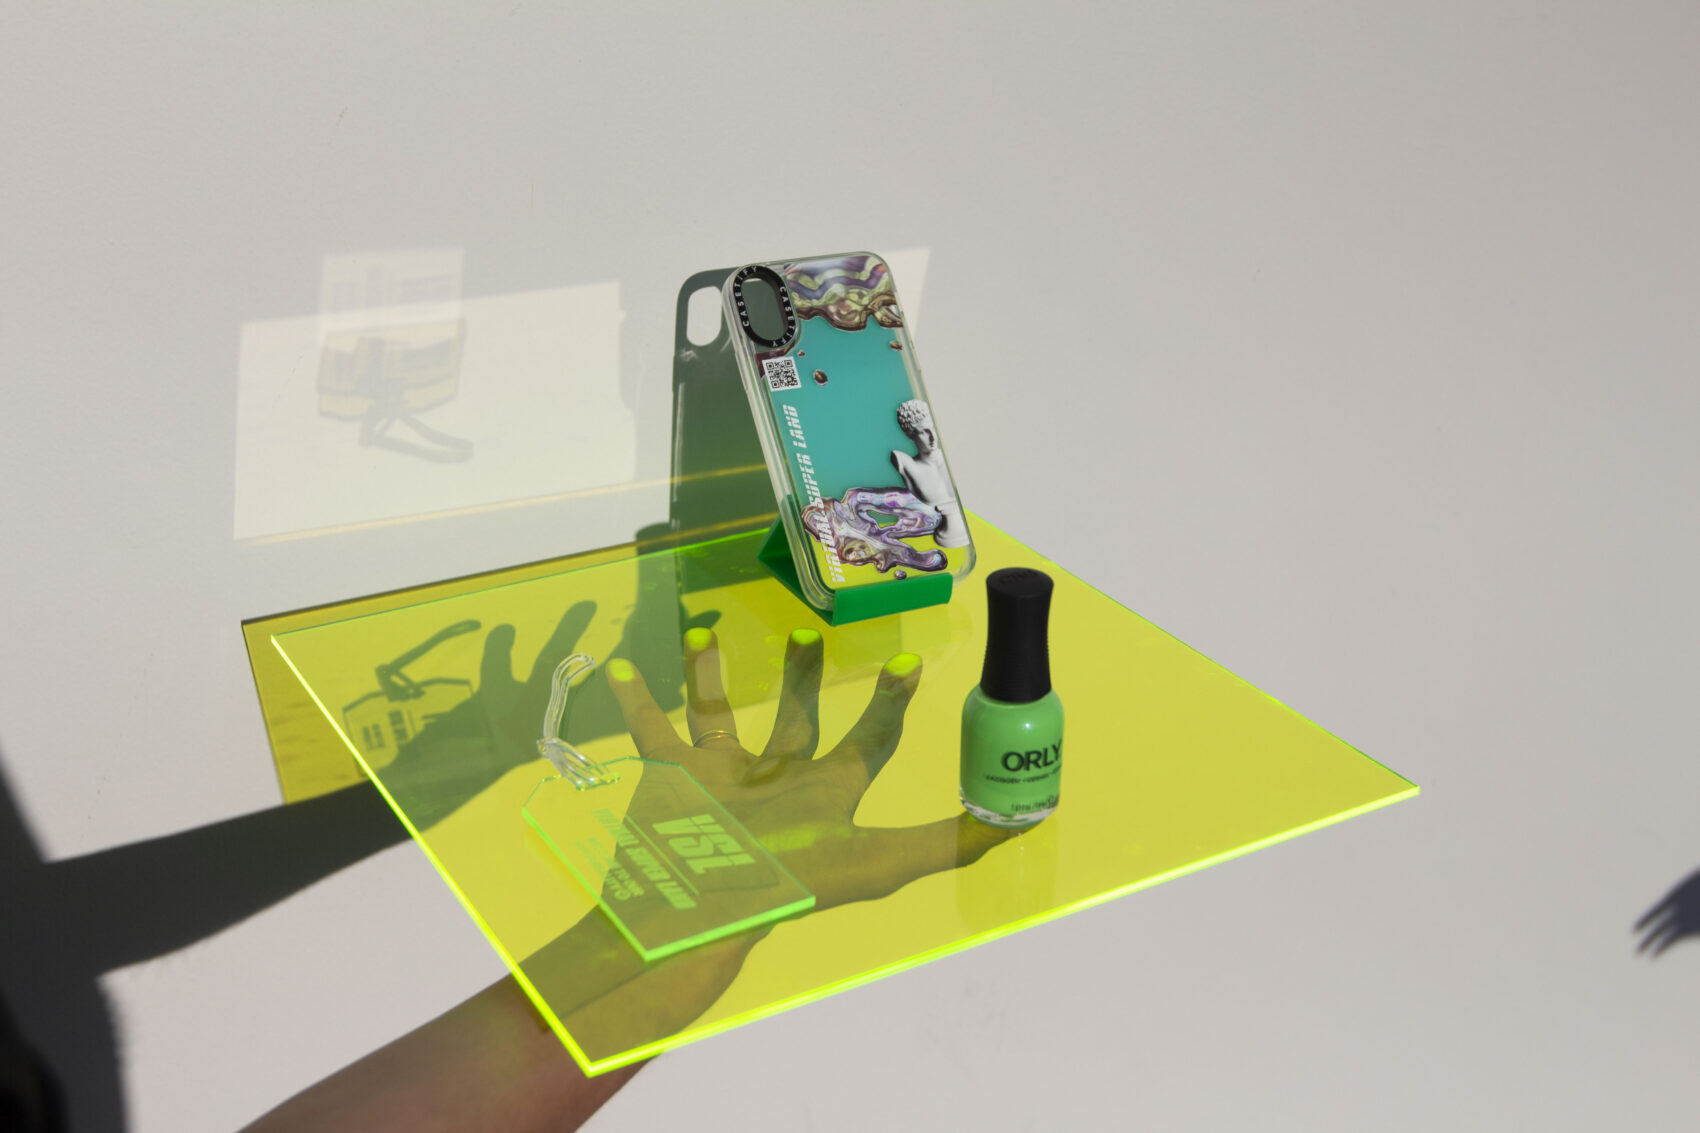 AR fashion brand Virtual Super Land launches Fred Segal pop-up in LA